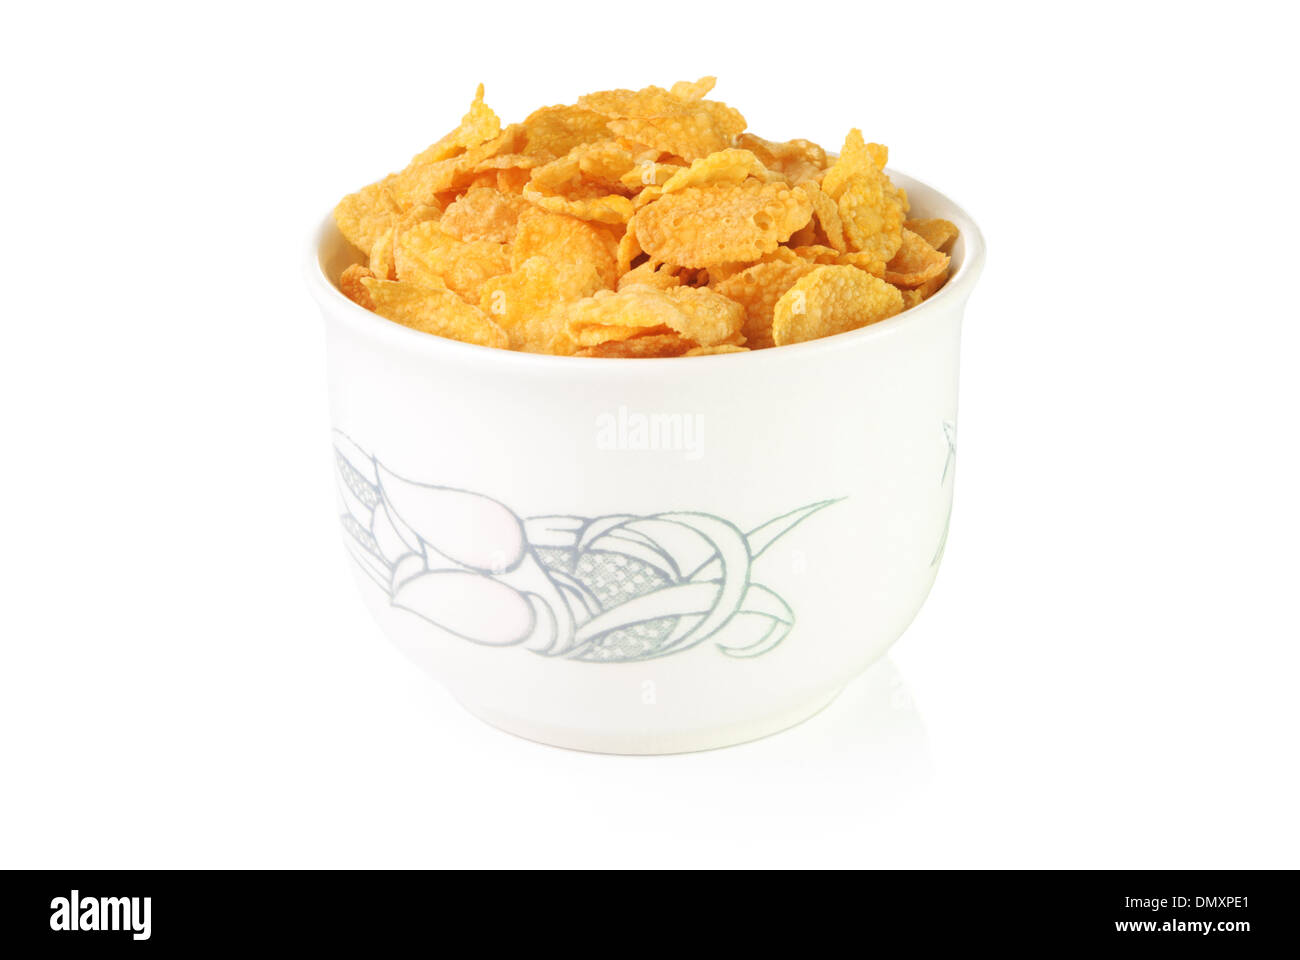 Corn flakes in a bowl on white background - Stock Image